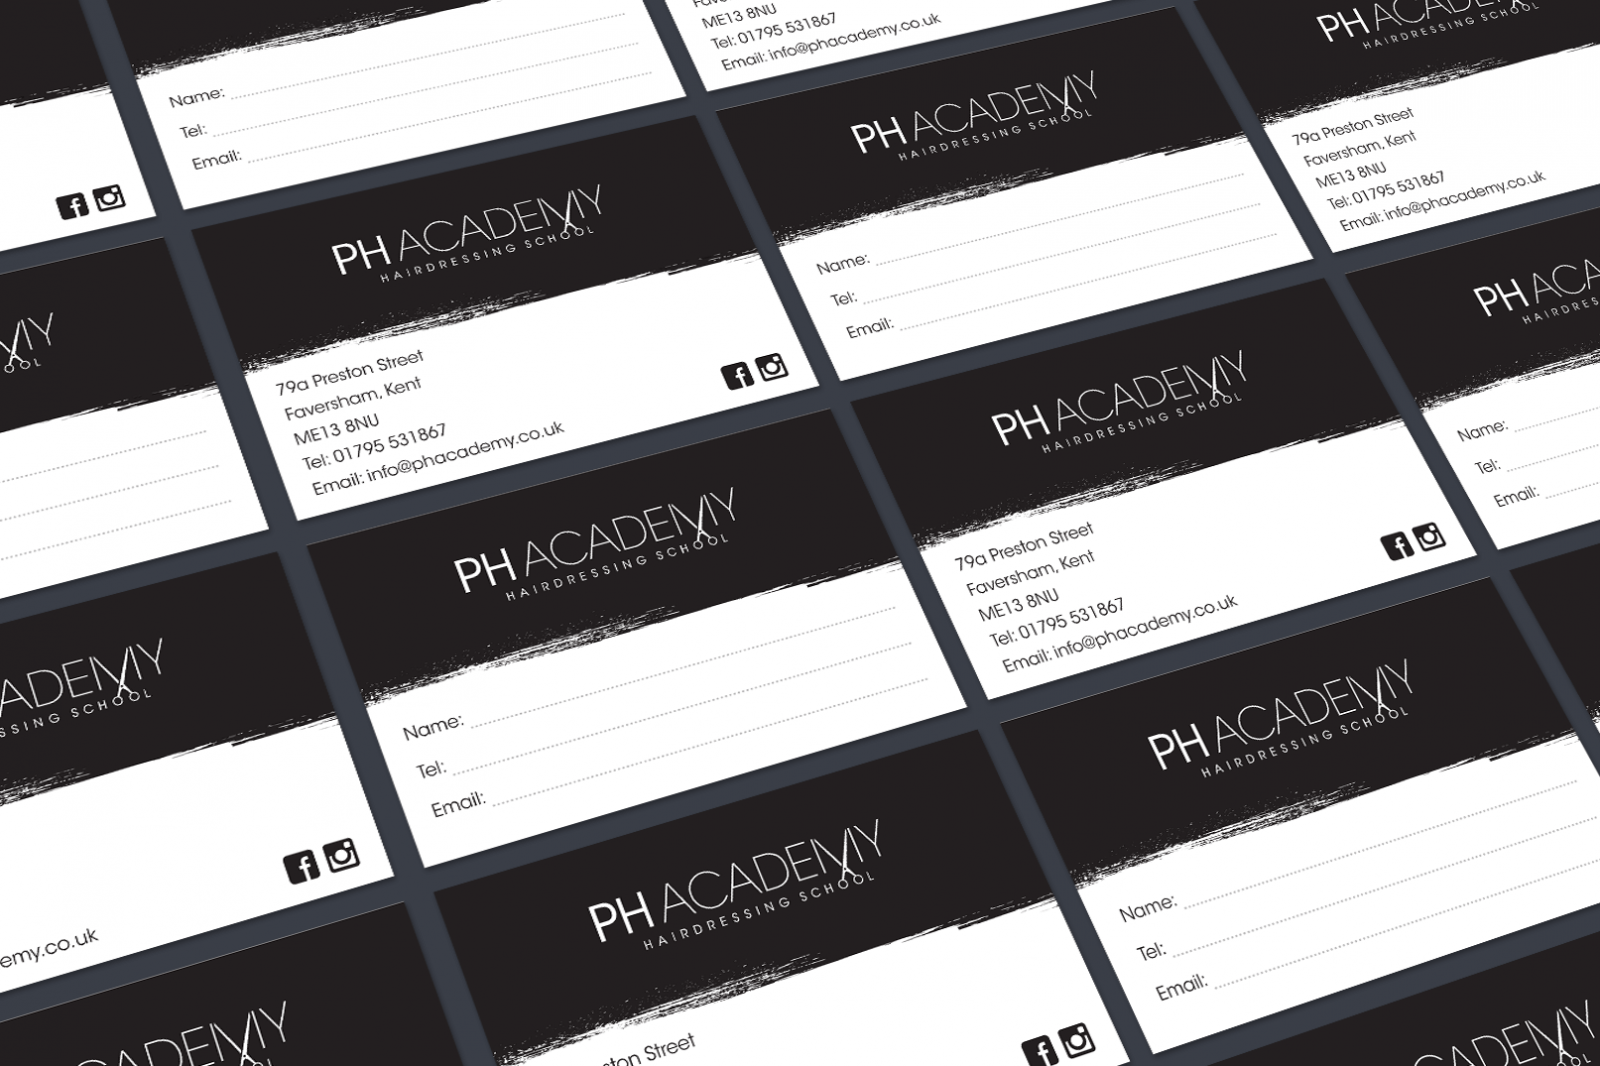 Business-ph-academy-card-corporate-identity-agency-graphic-design-canterbury.png